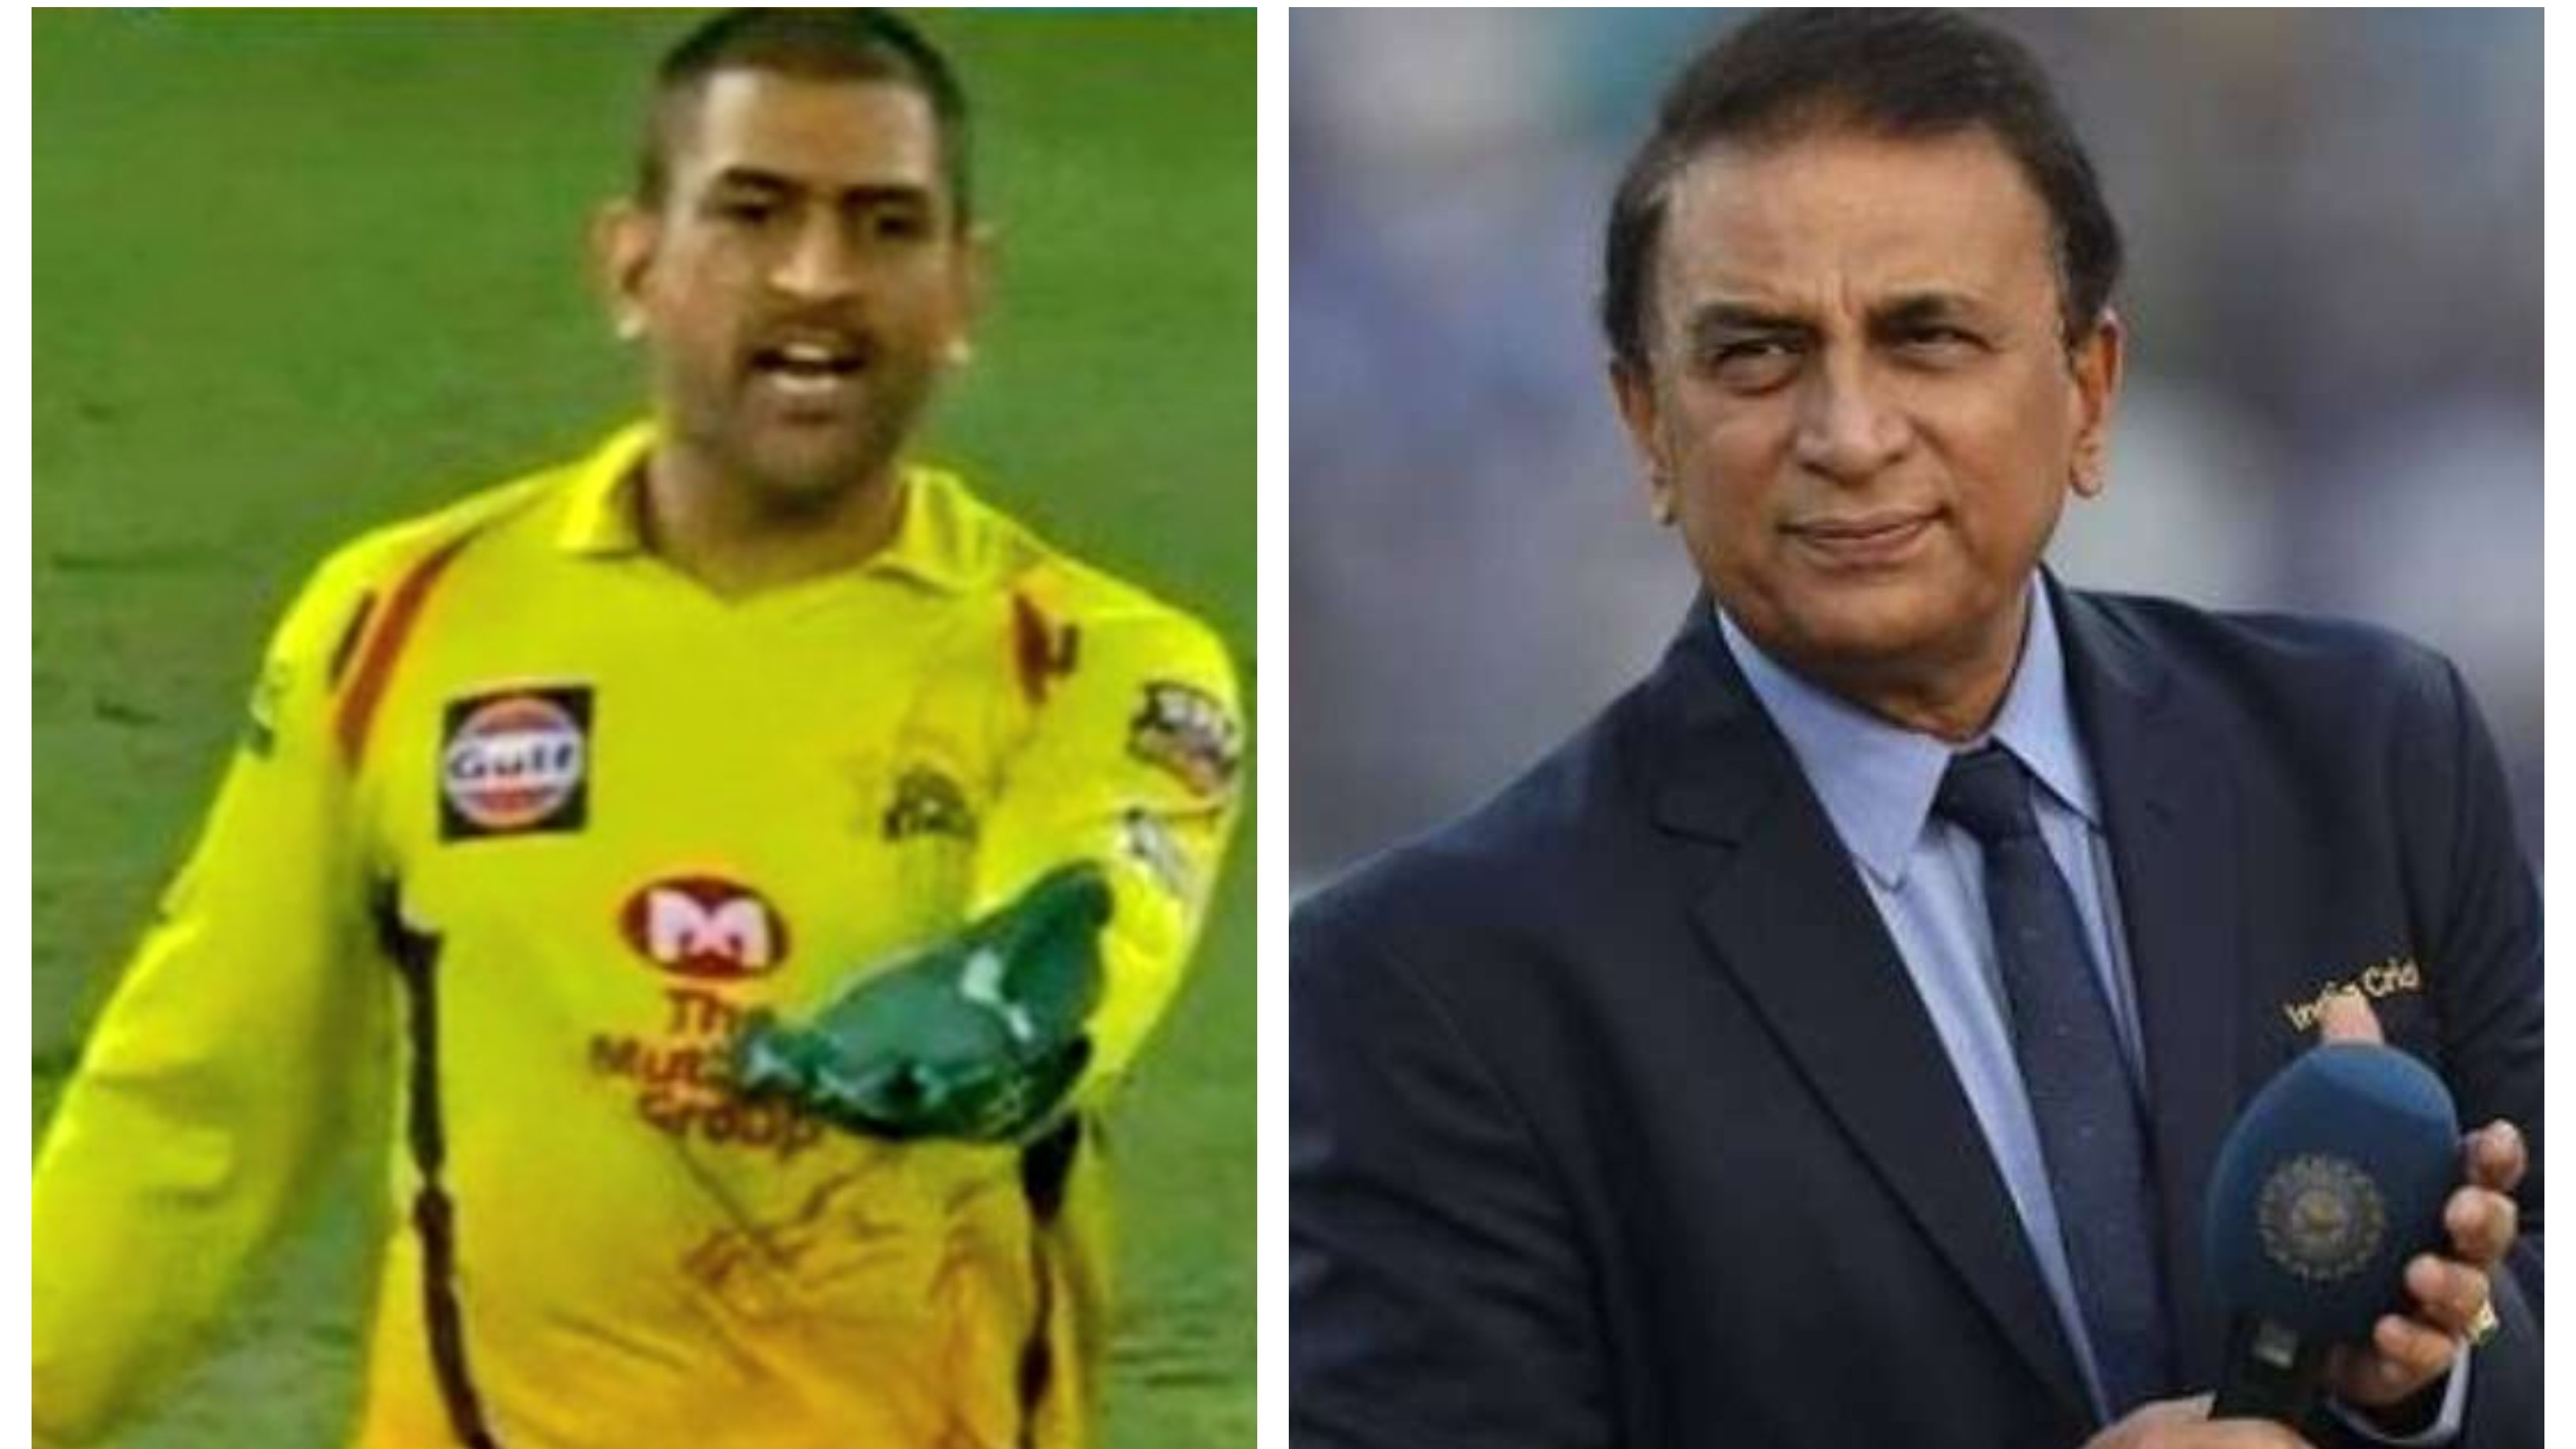 IPL 2020: 'He called out the batsman's movement', Gavaskar defends Dhoni on questioning umpire's wide call